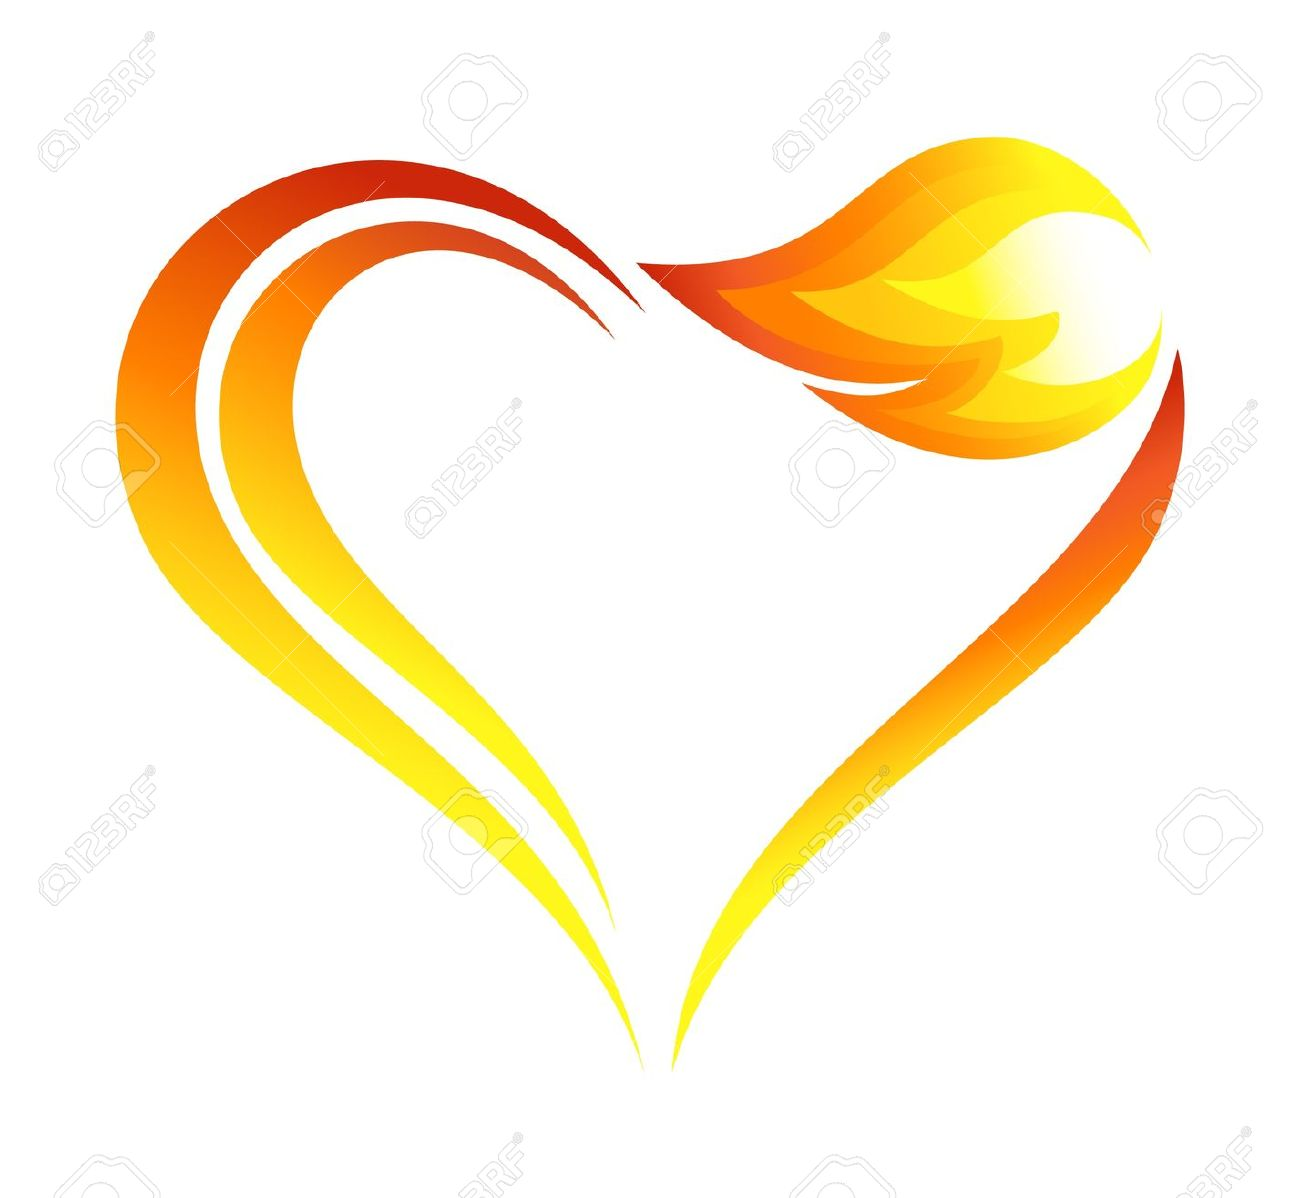 Heart flame clipart clip freeuse Hearts And Flames | Free download best Hearts And Flames on ... clip freeuse